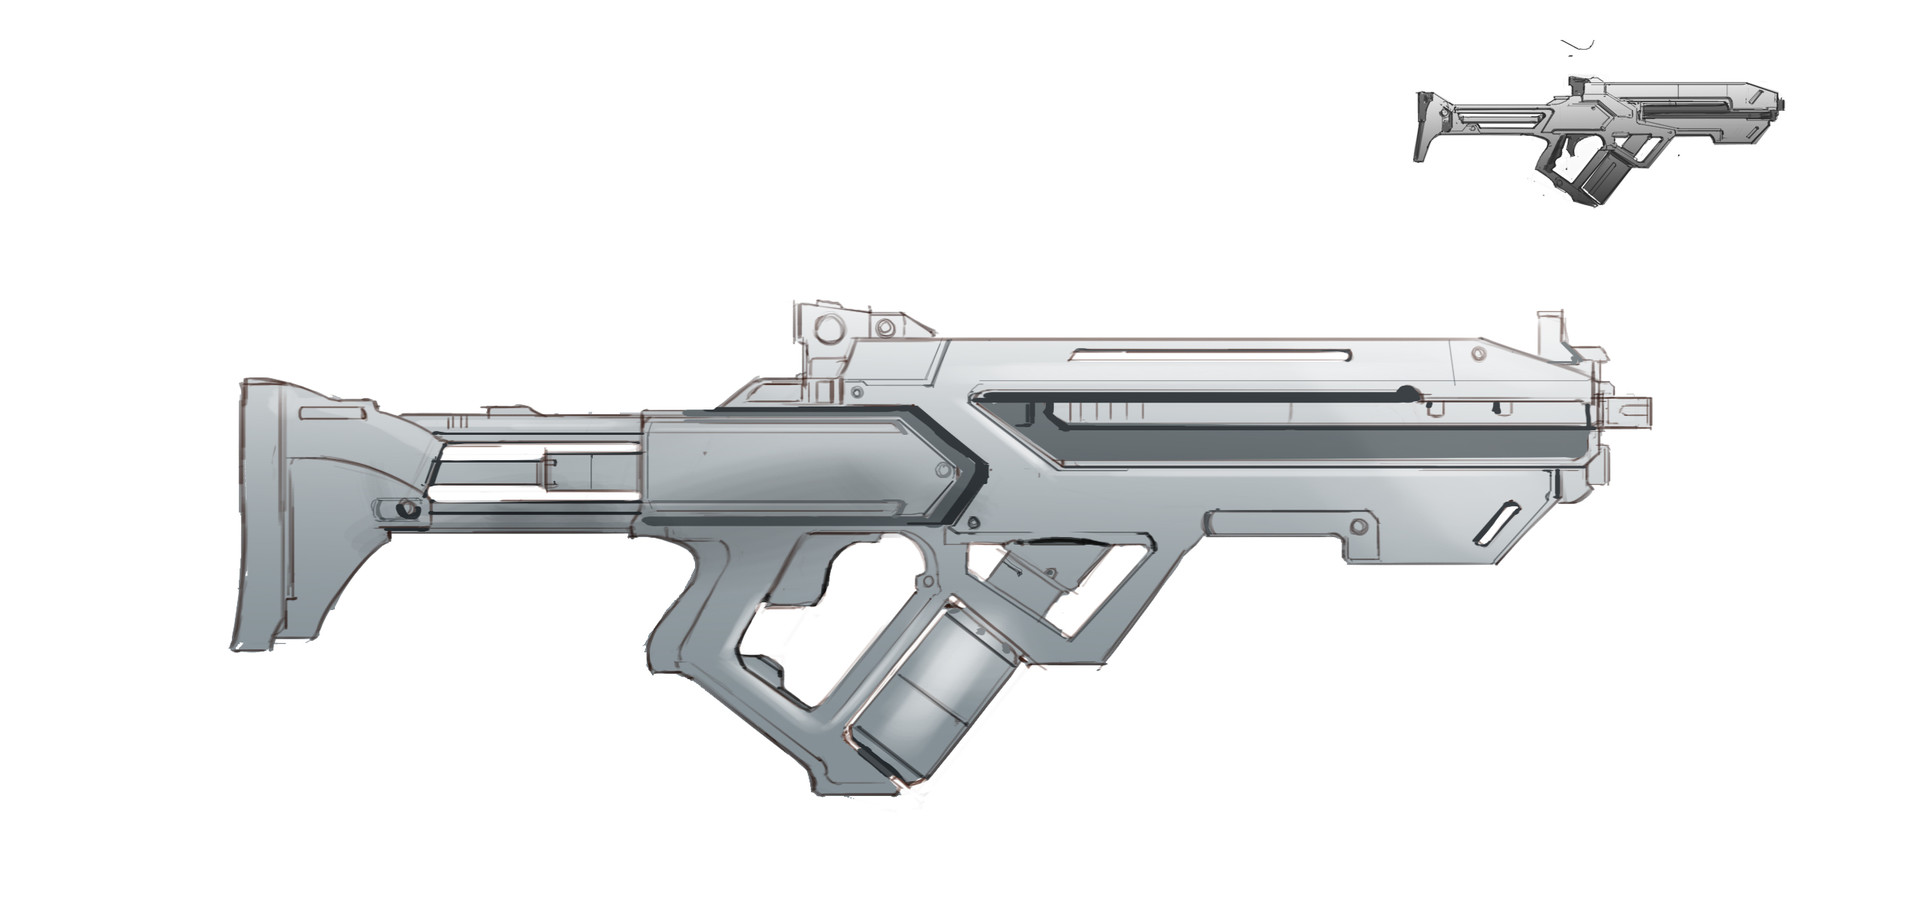 Brian yam grayscale weapon graphic